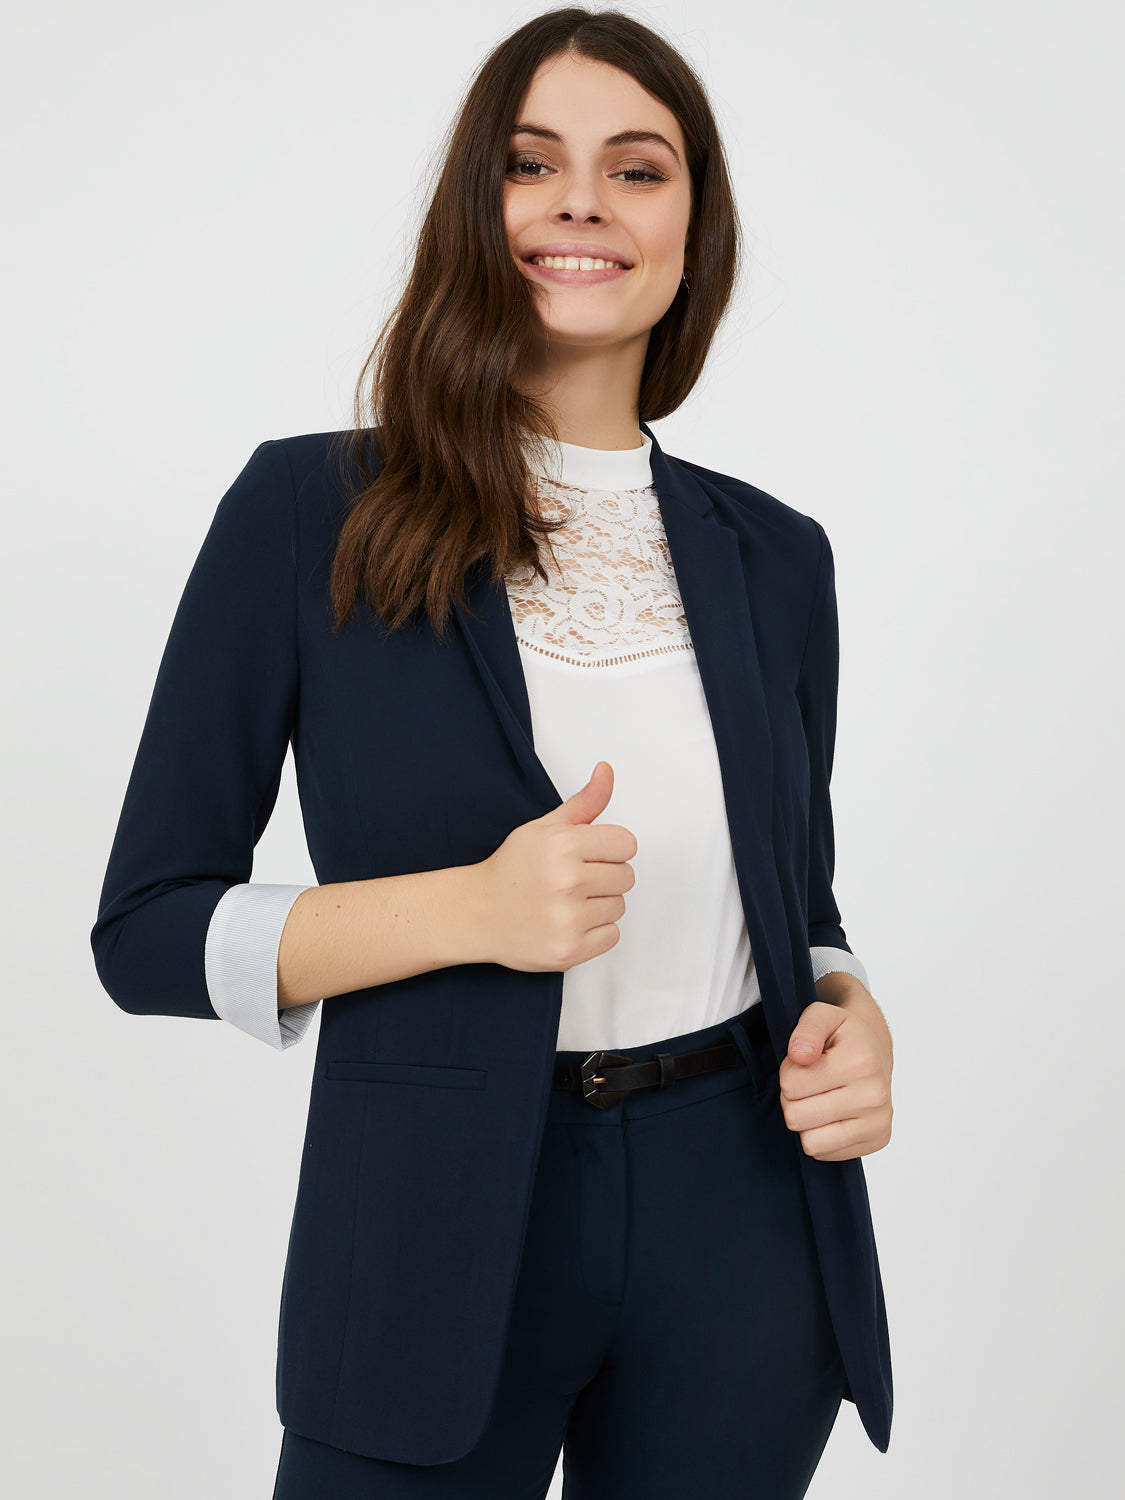 ¾ Sleeve Notch Collar Blazer